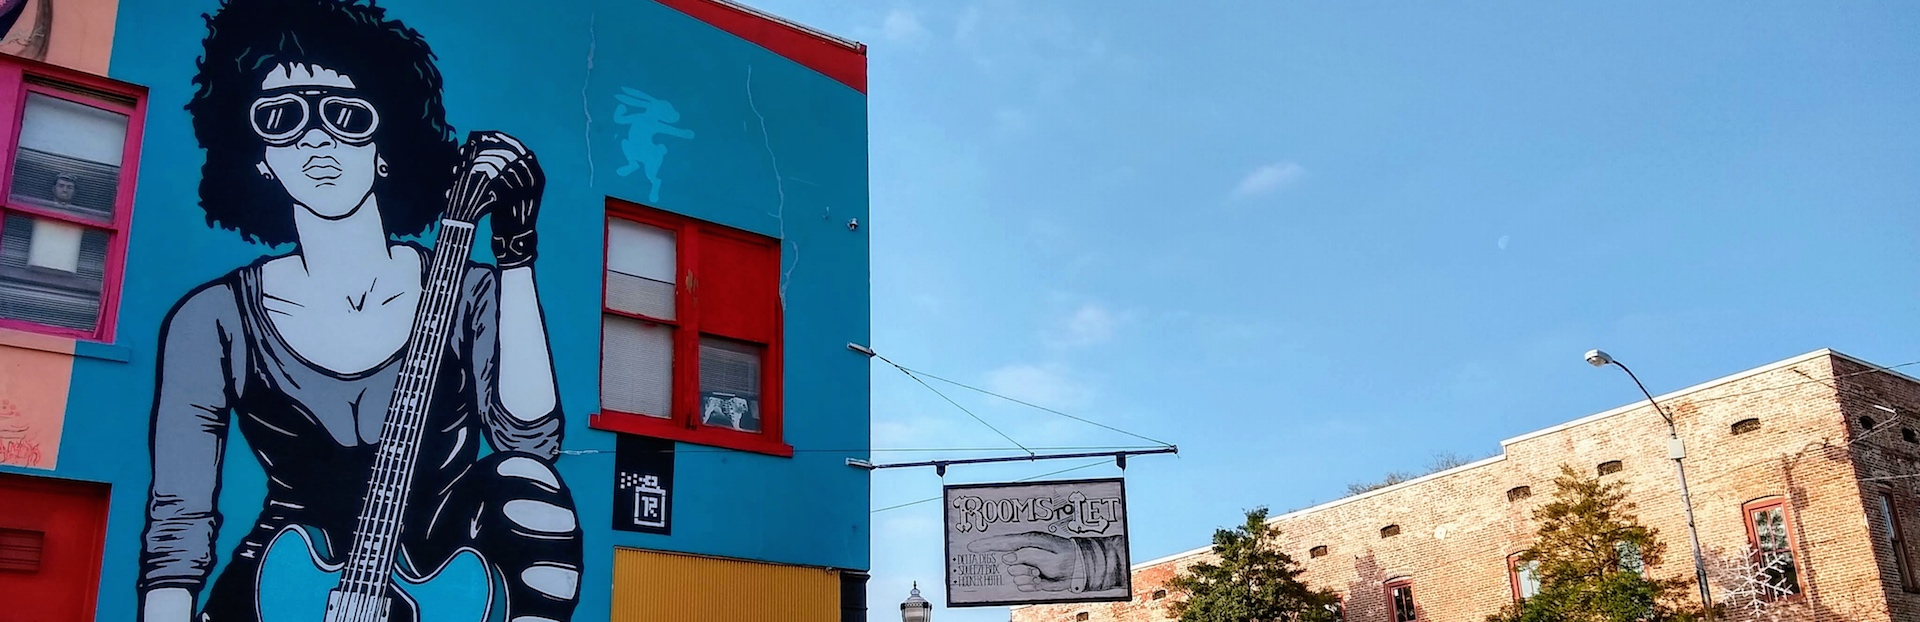 Clarksdale, Mississippi  audio tour: Mississippi Delta: Why Clarksdale Rocks the Blues